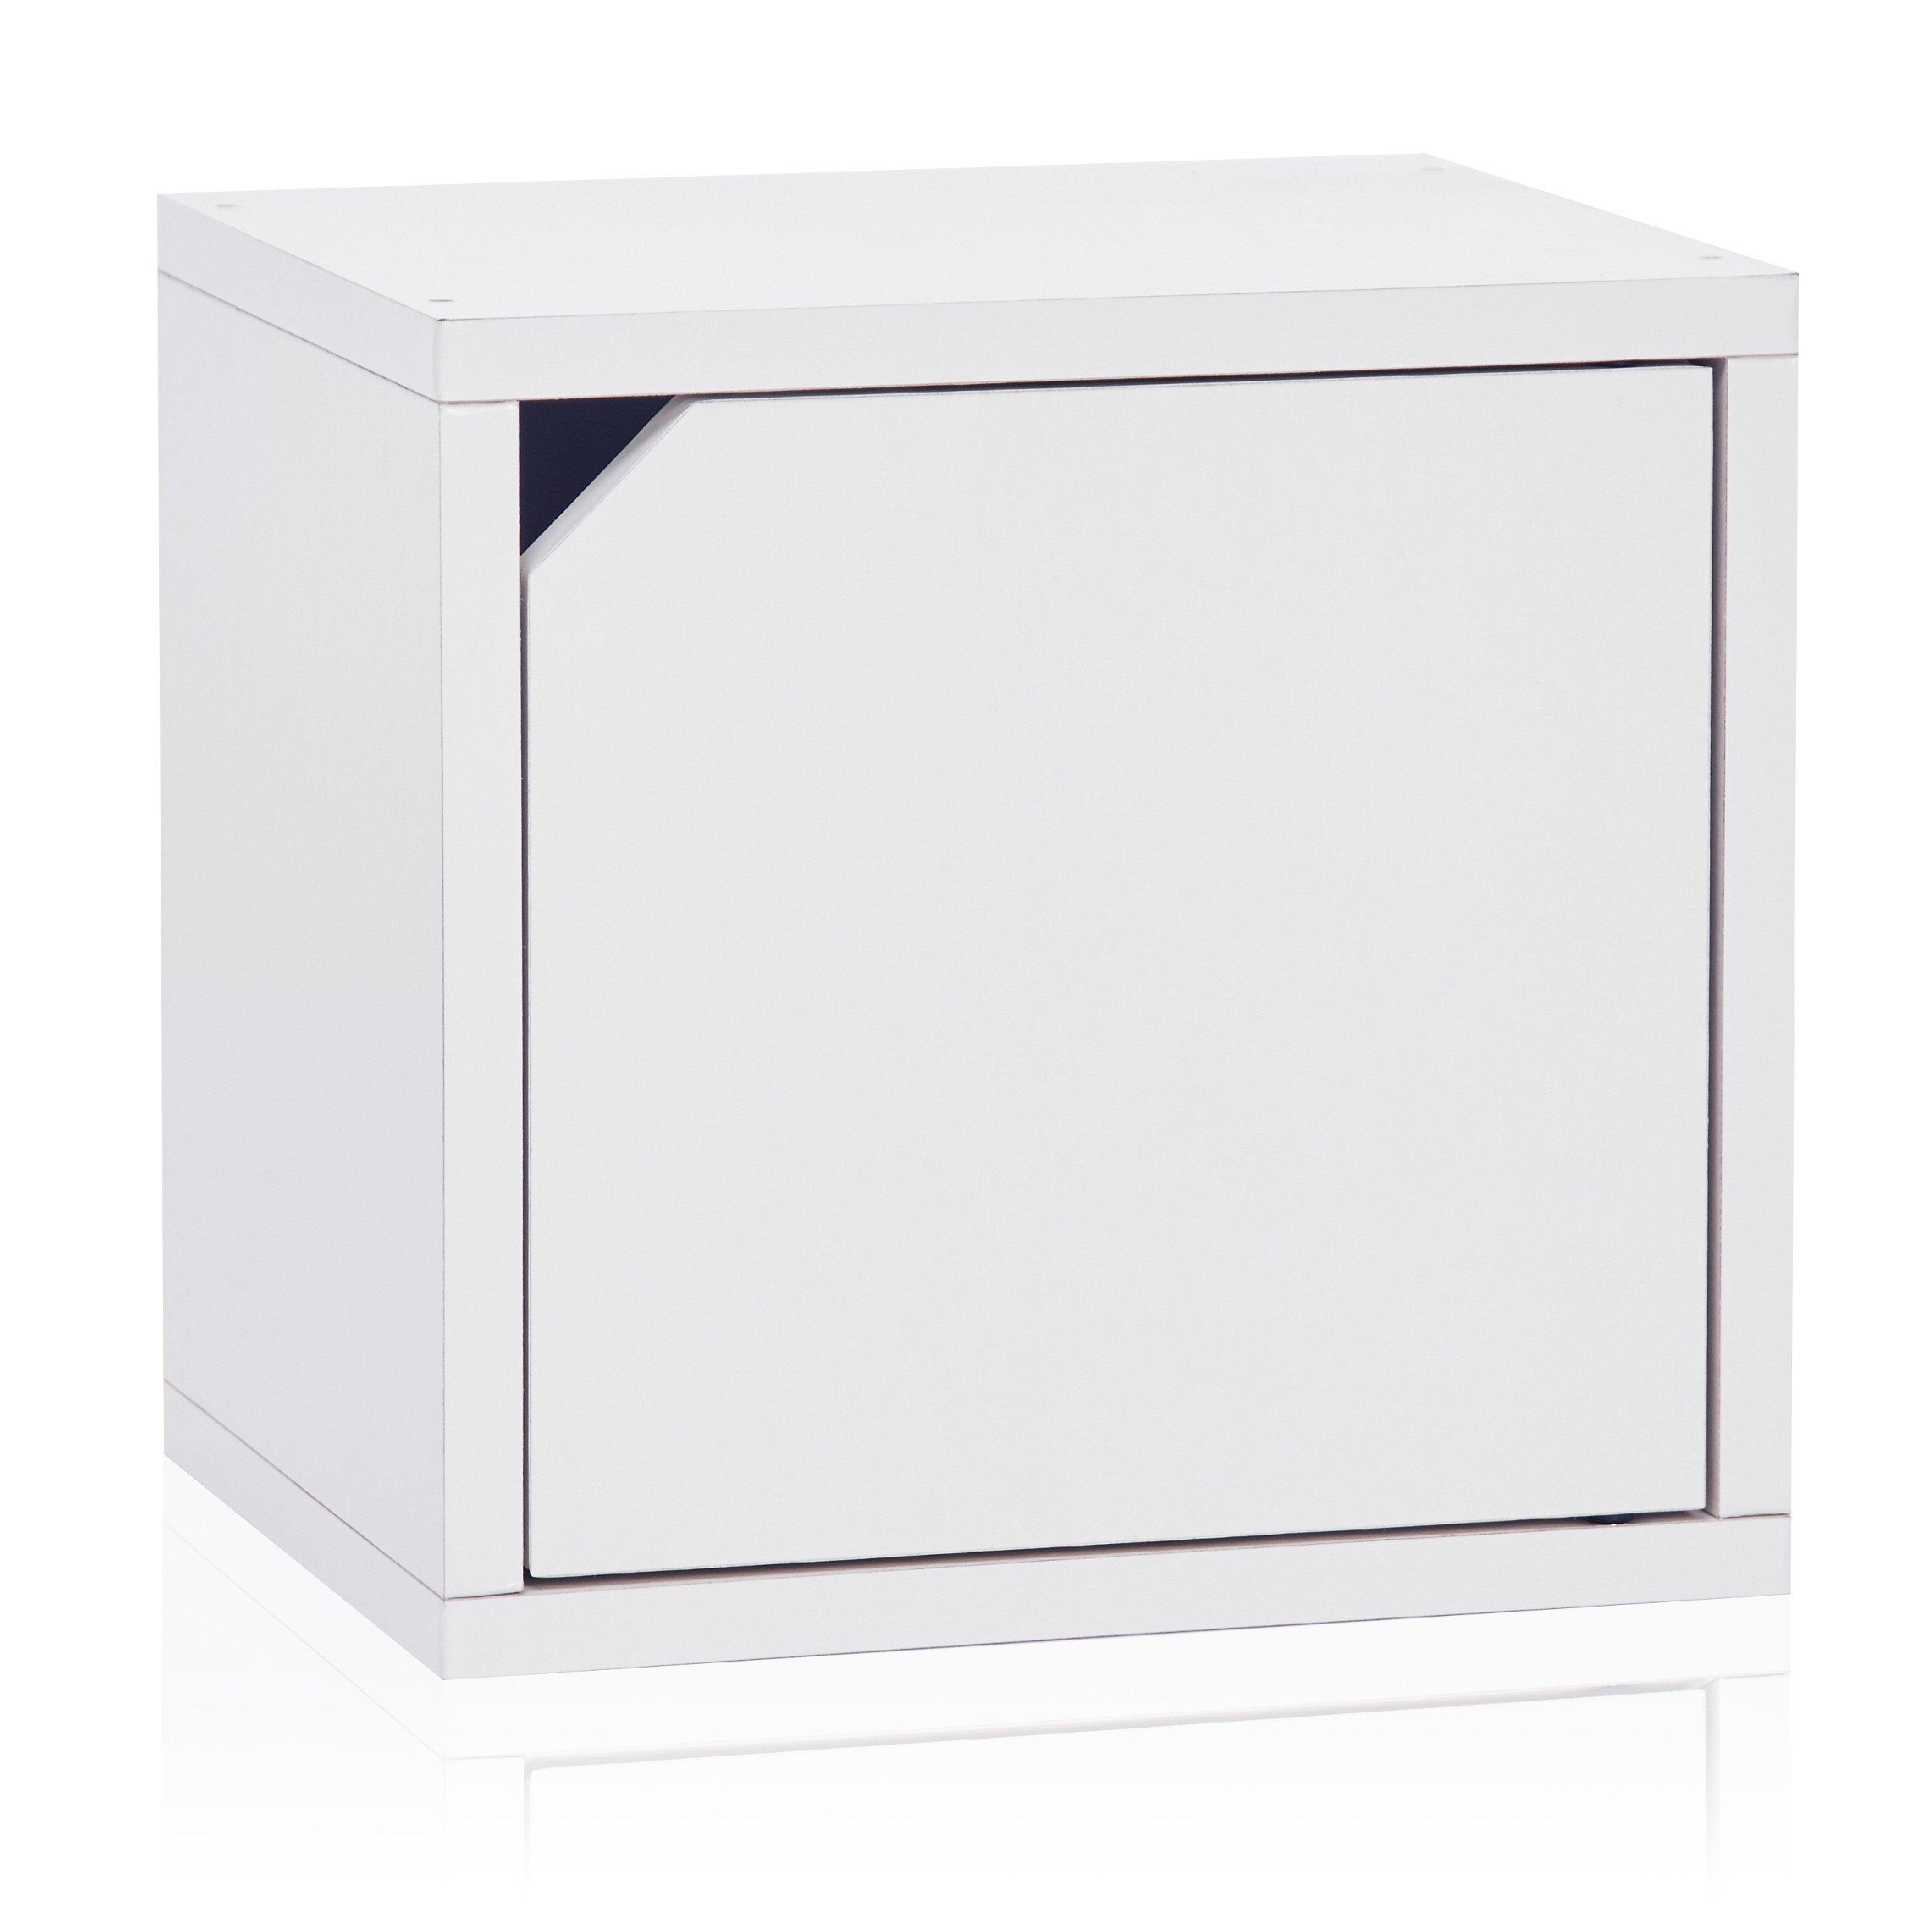 Way Basics Eco Stackable Connect Storage Cube with Door, Natural White (uniquely crafted from zBoard paperboard)